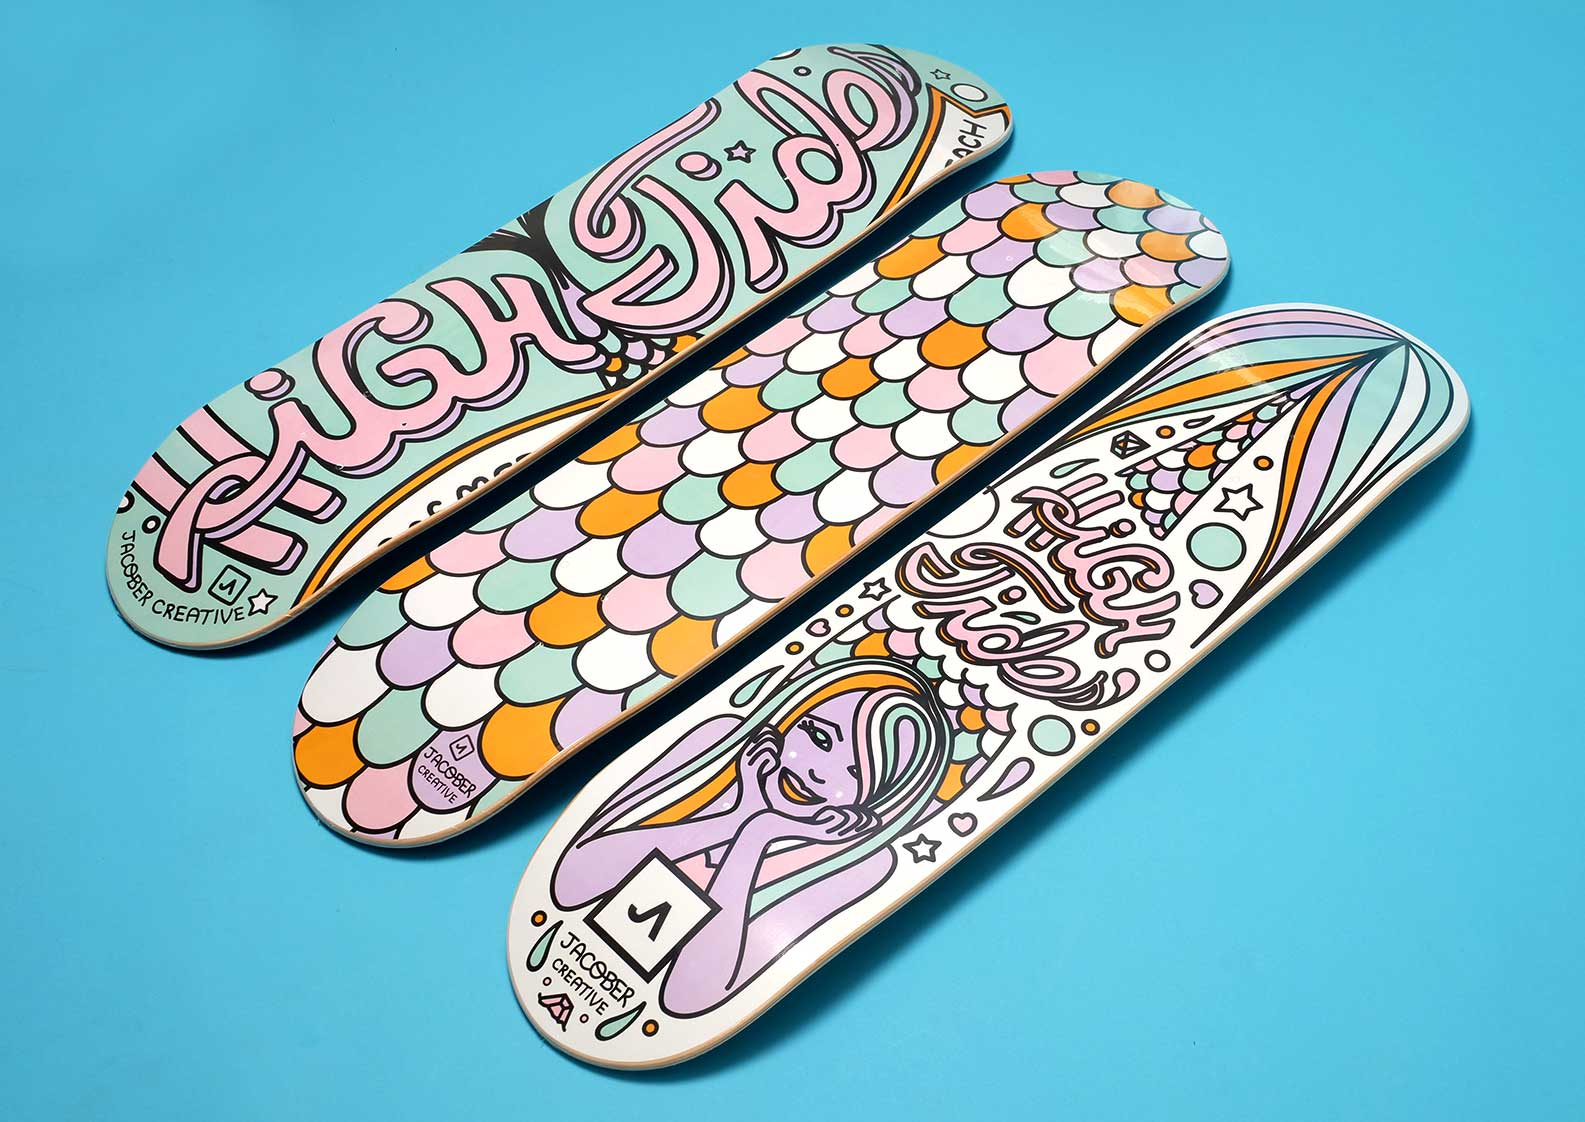 hightides-casestudy-skateboards.jpg